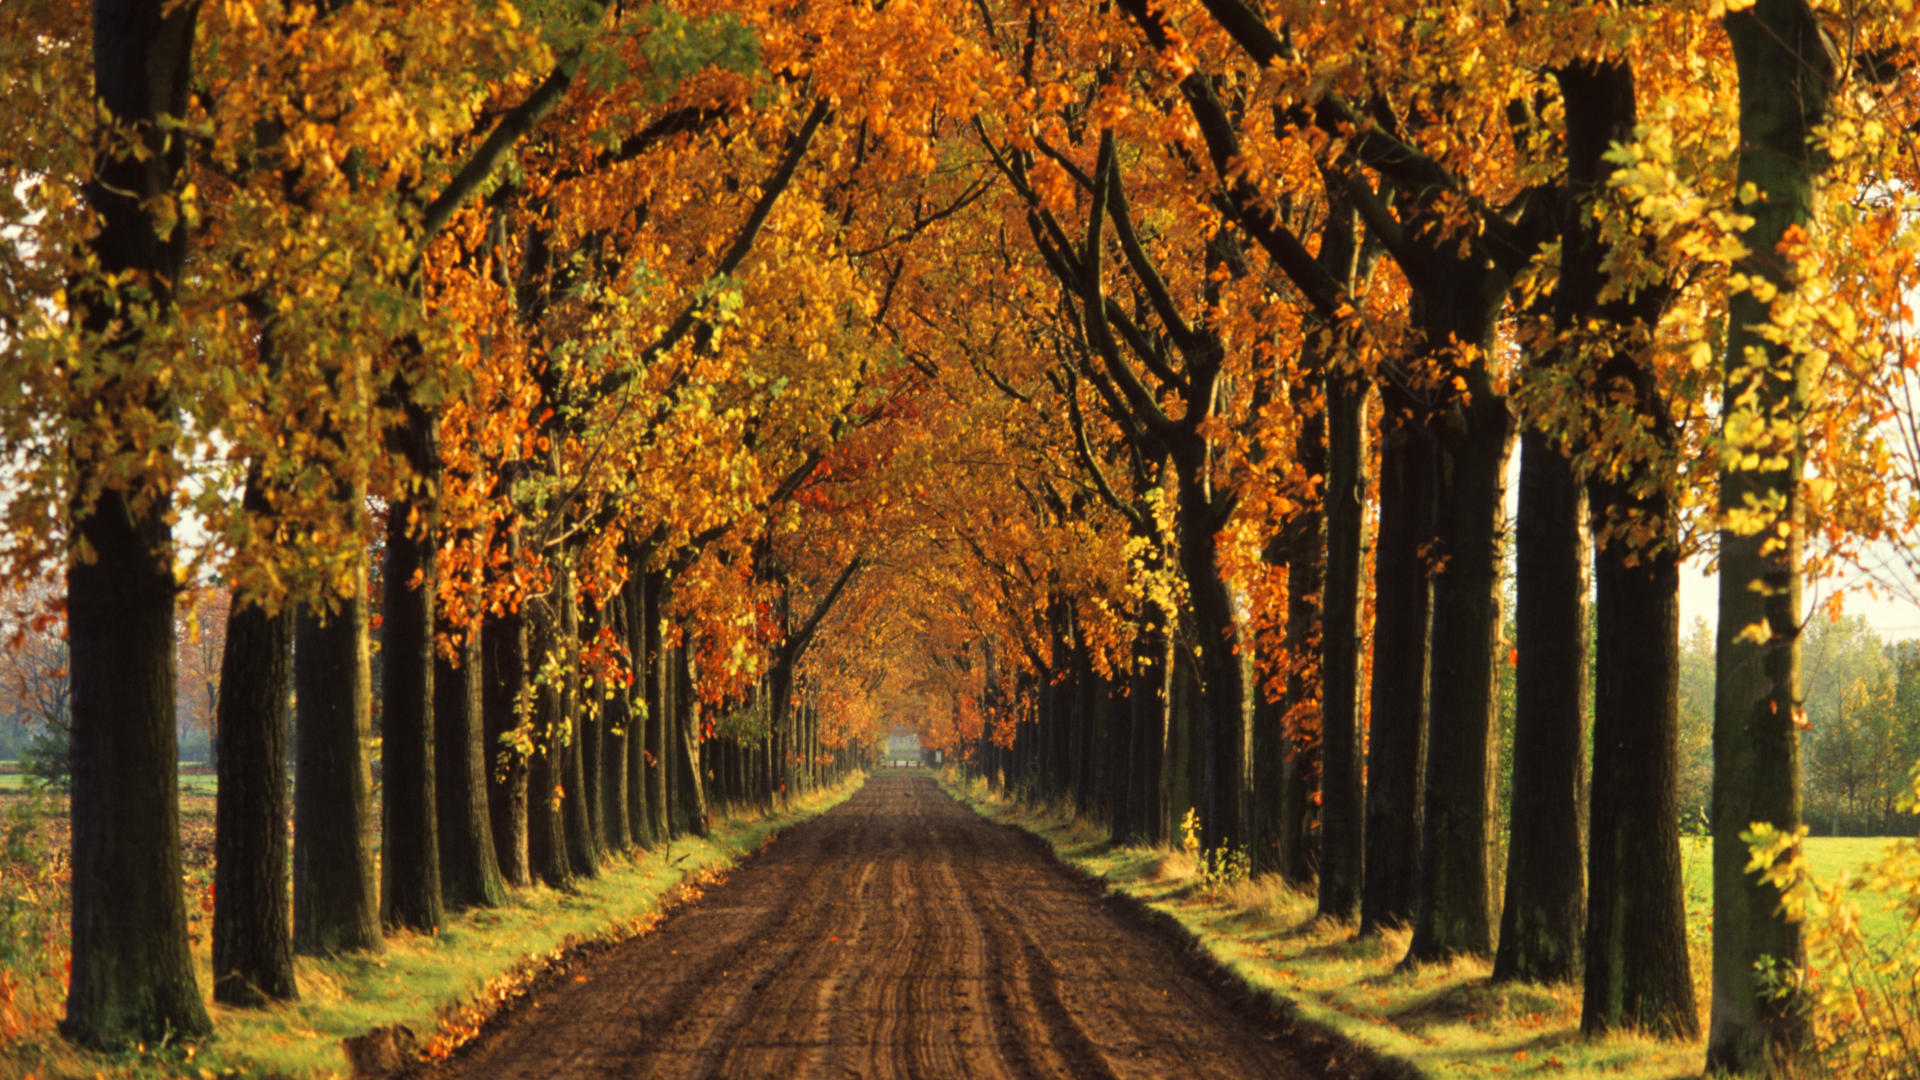 Backgrounds Holl Autumn Tree Background Lined wallpapers HD 1920x1080